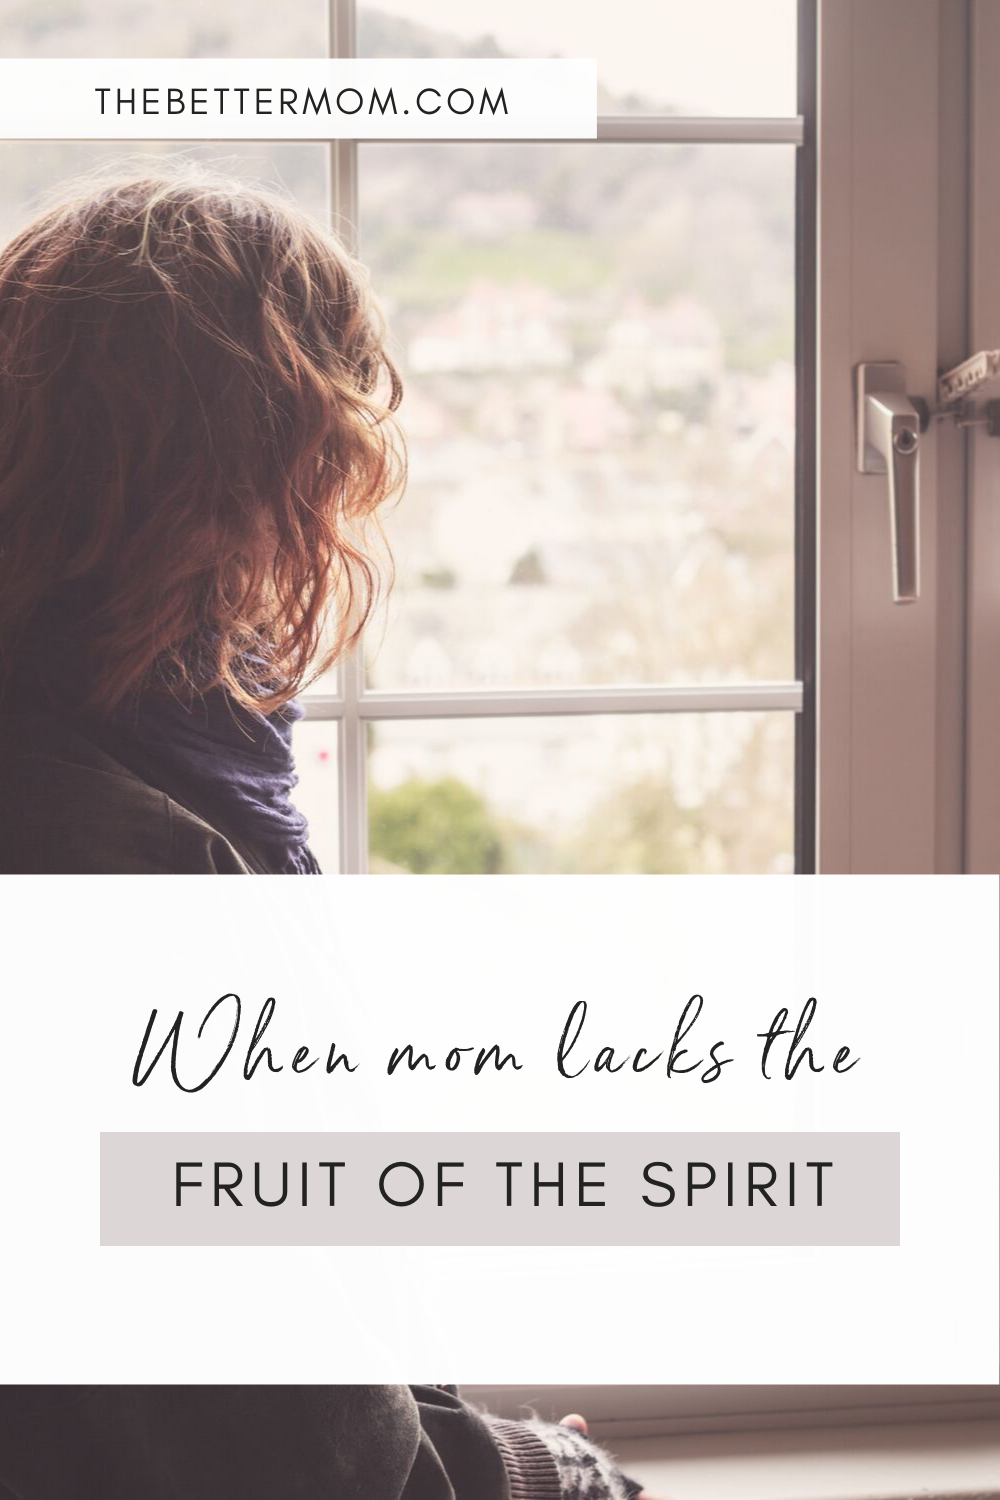 Do you wonder what you have to offer your family? Do you feel deep conviction in the way anger keeps lashing out in your days but don't know how to begin to change? This message is for you. This Hope is for the mom who doesn't see any fruit in her life. Come and hear the good news.